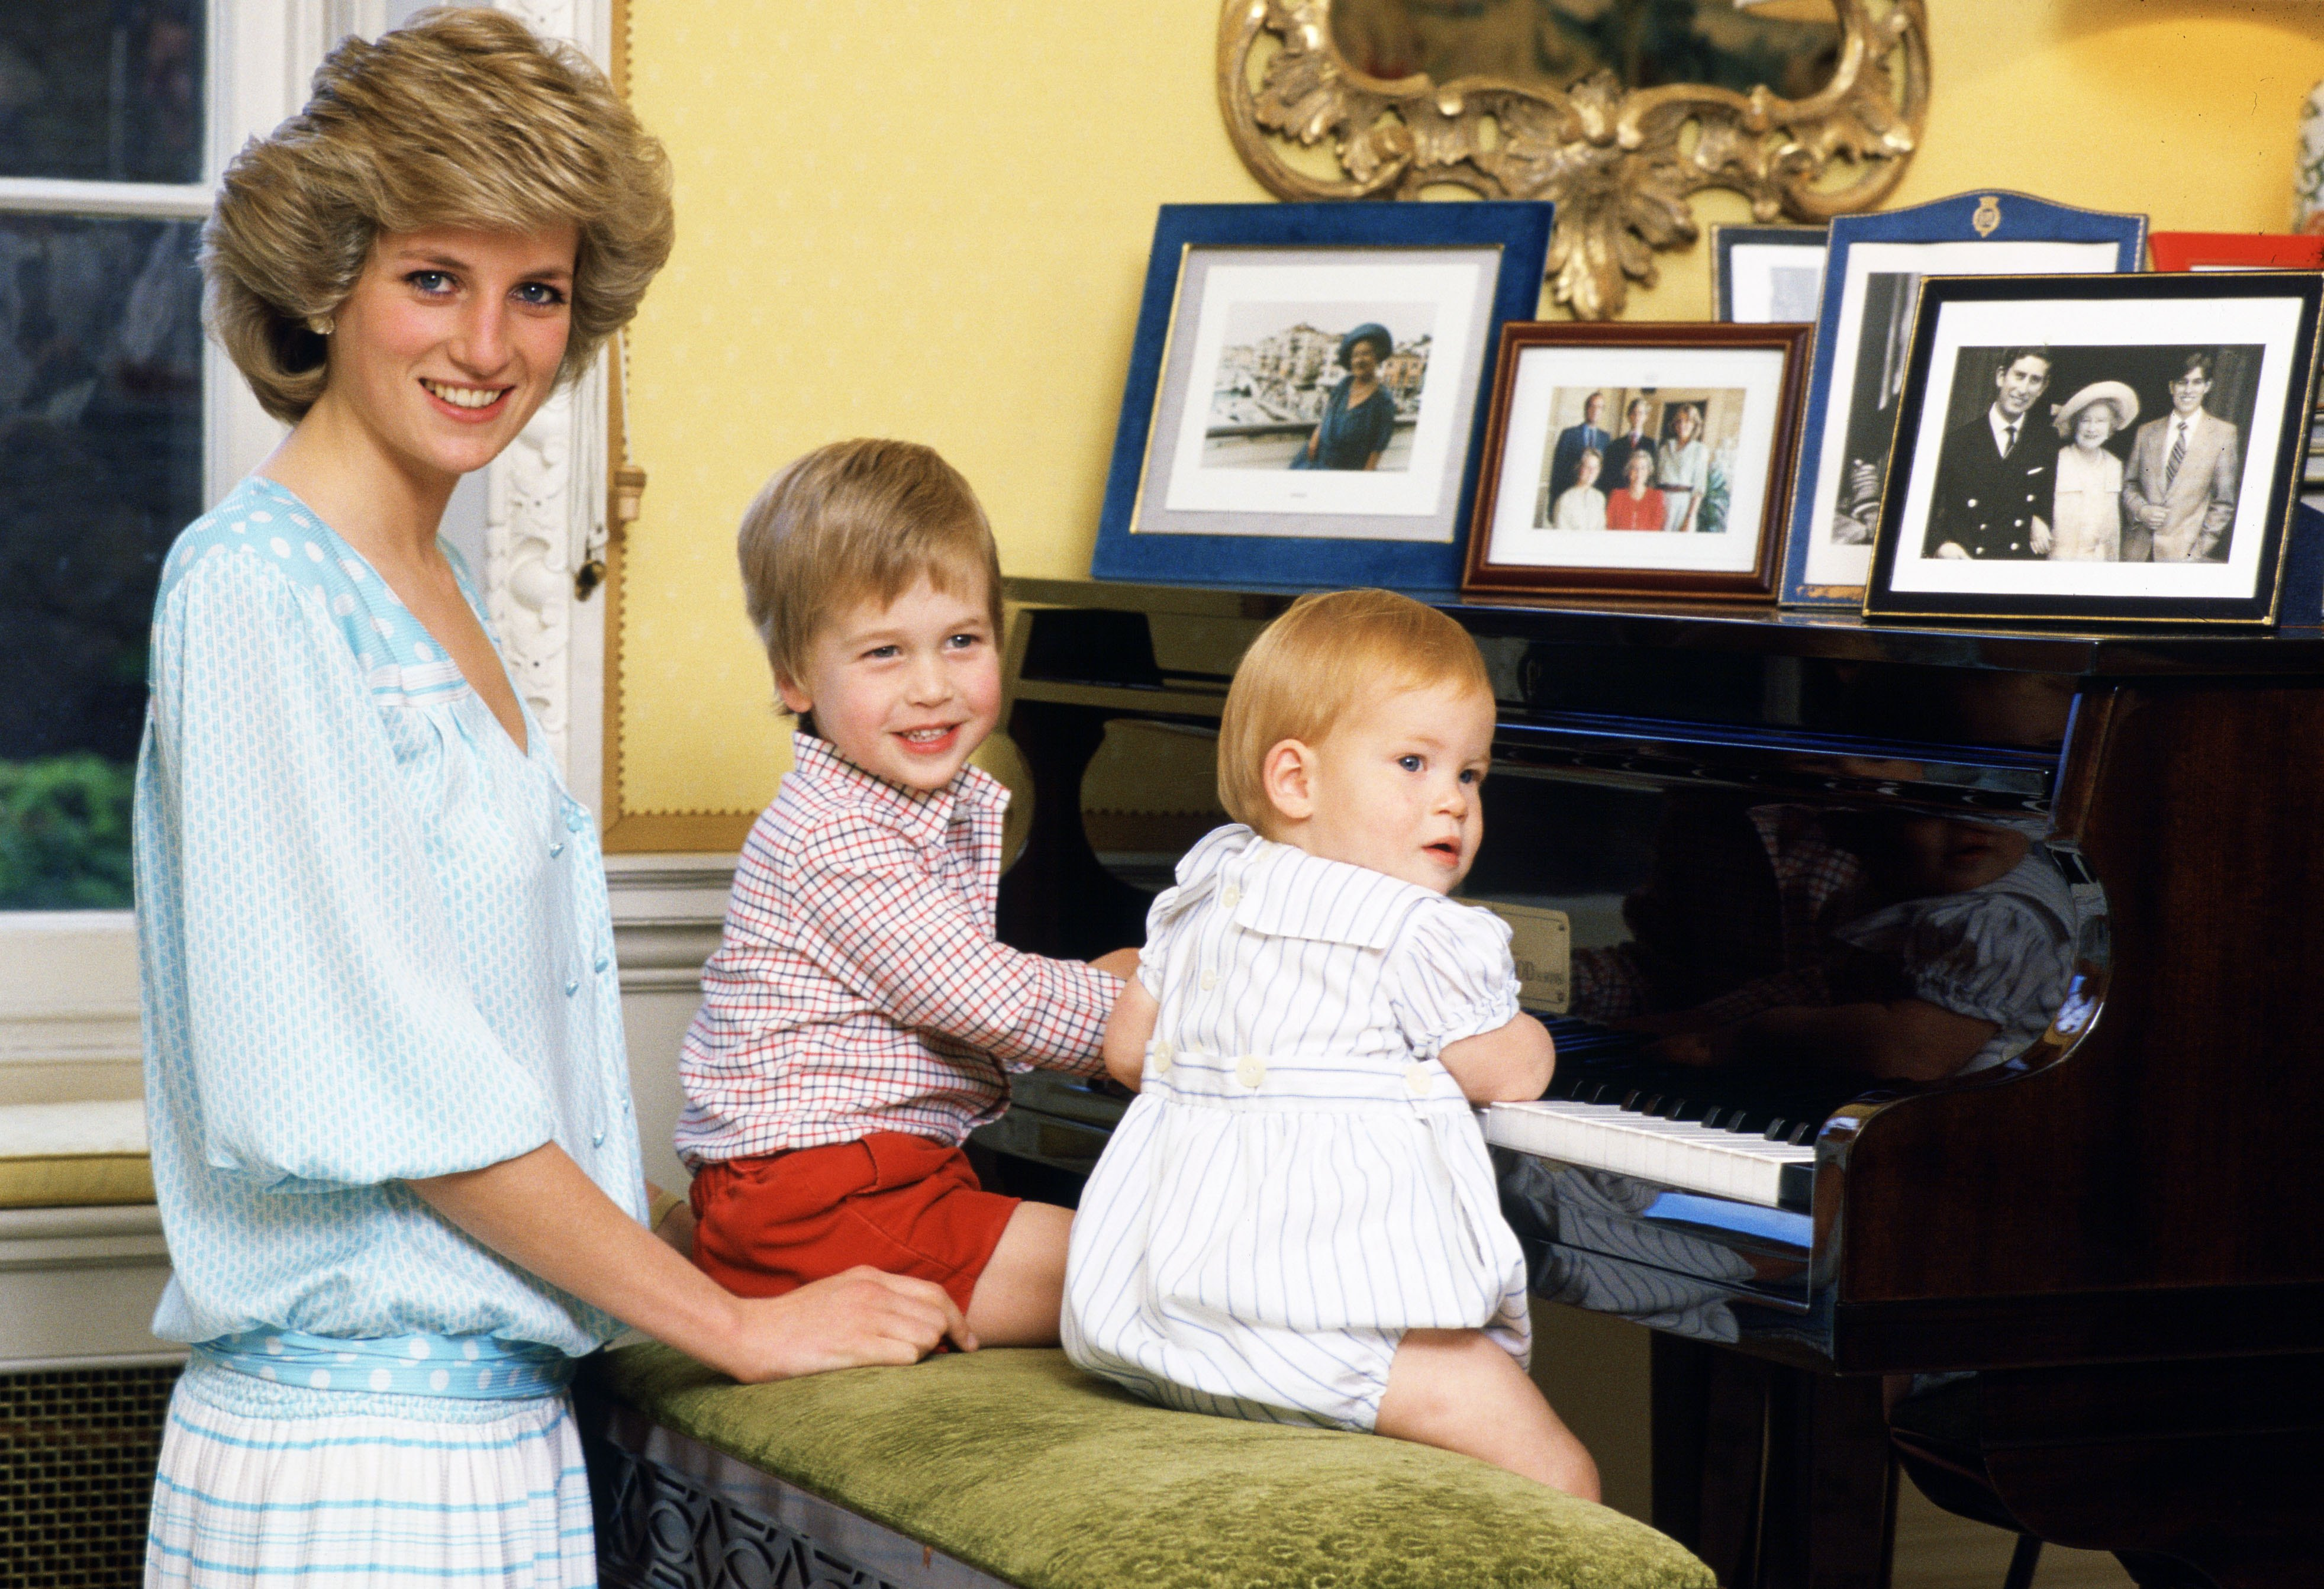 Diana, Princess of Wales with her sons, Prince William and Prince Harry, at the piano in Kensington Palace, London on Oct. 4, 1985.